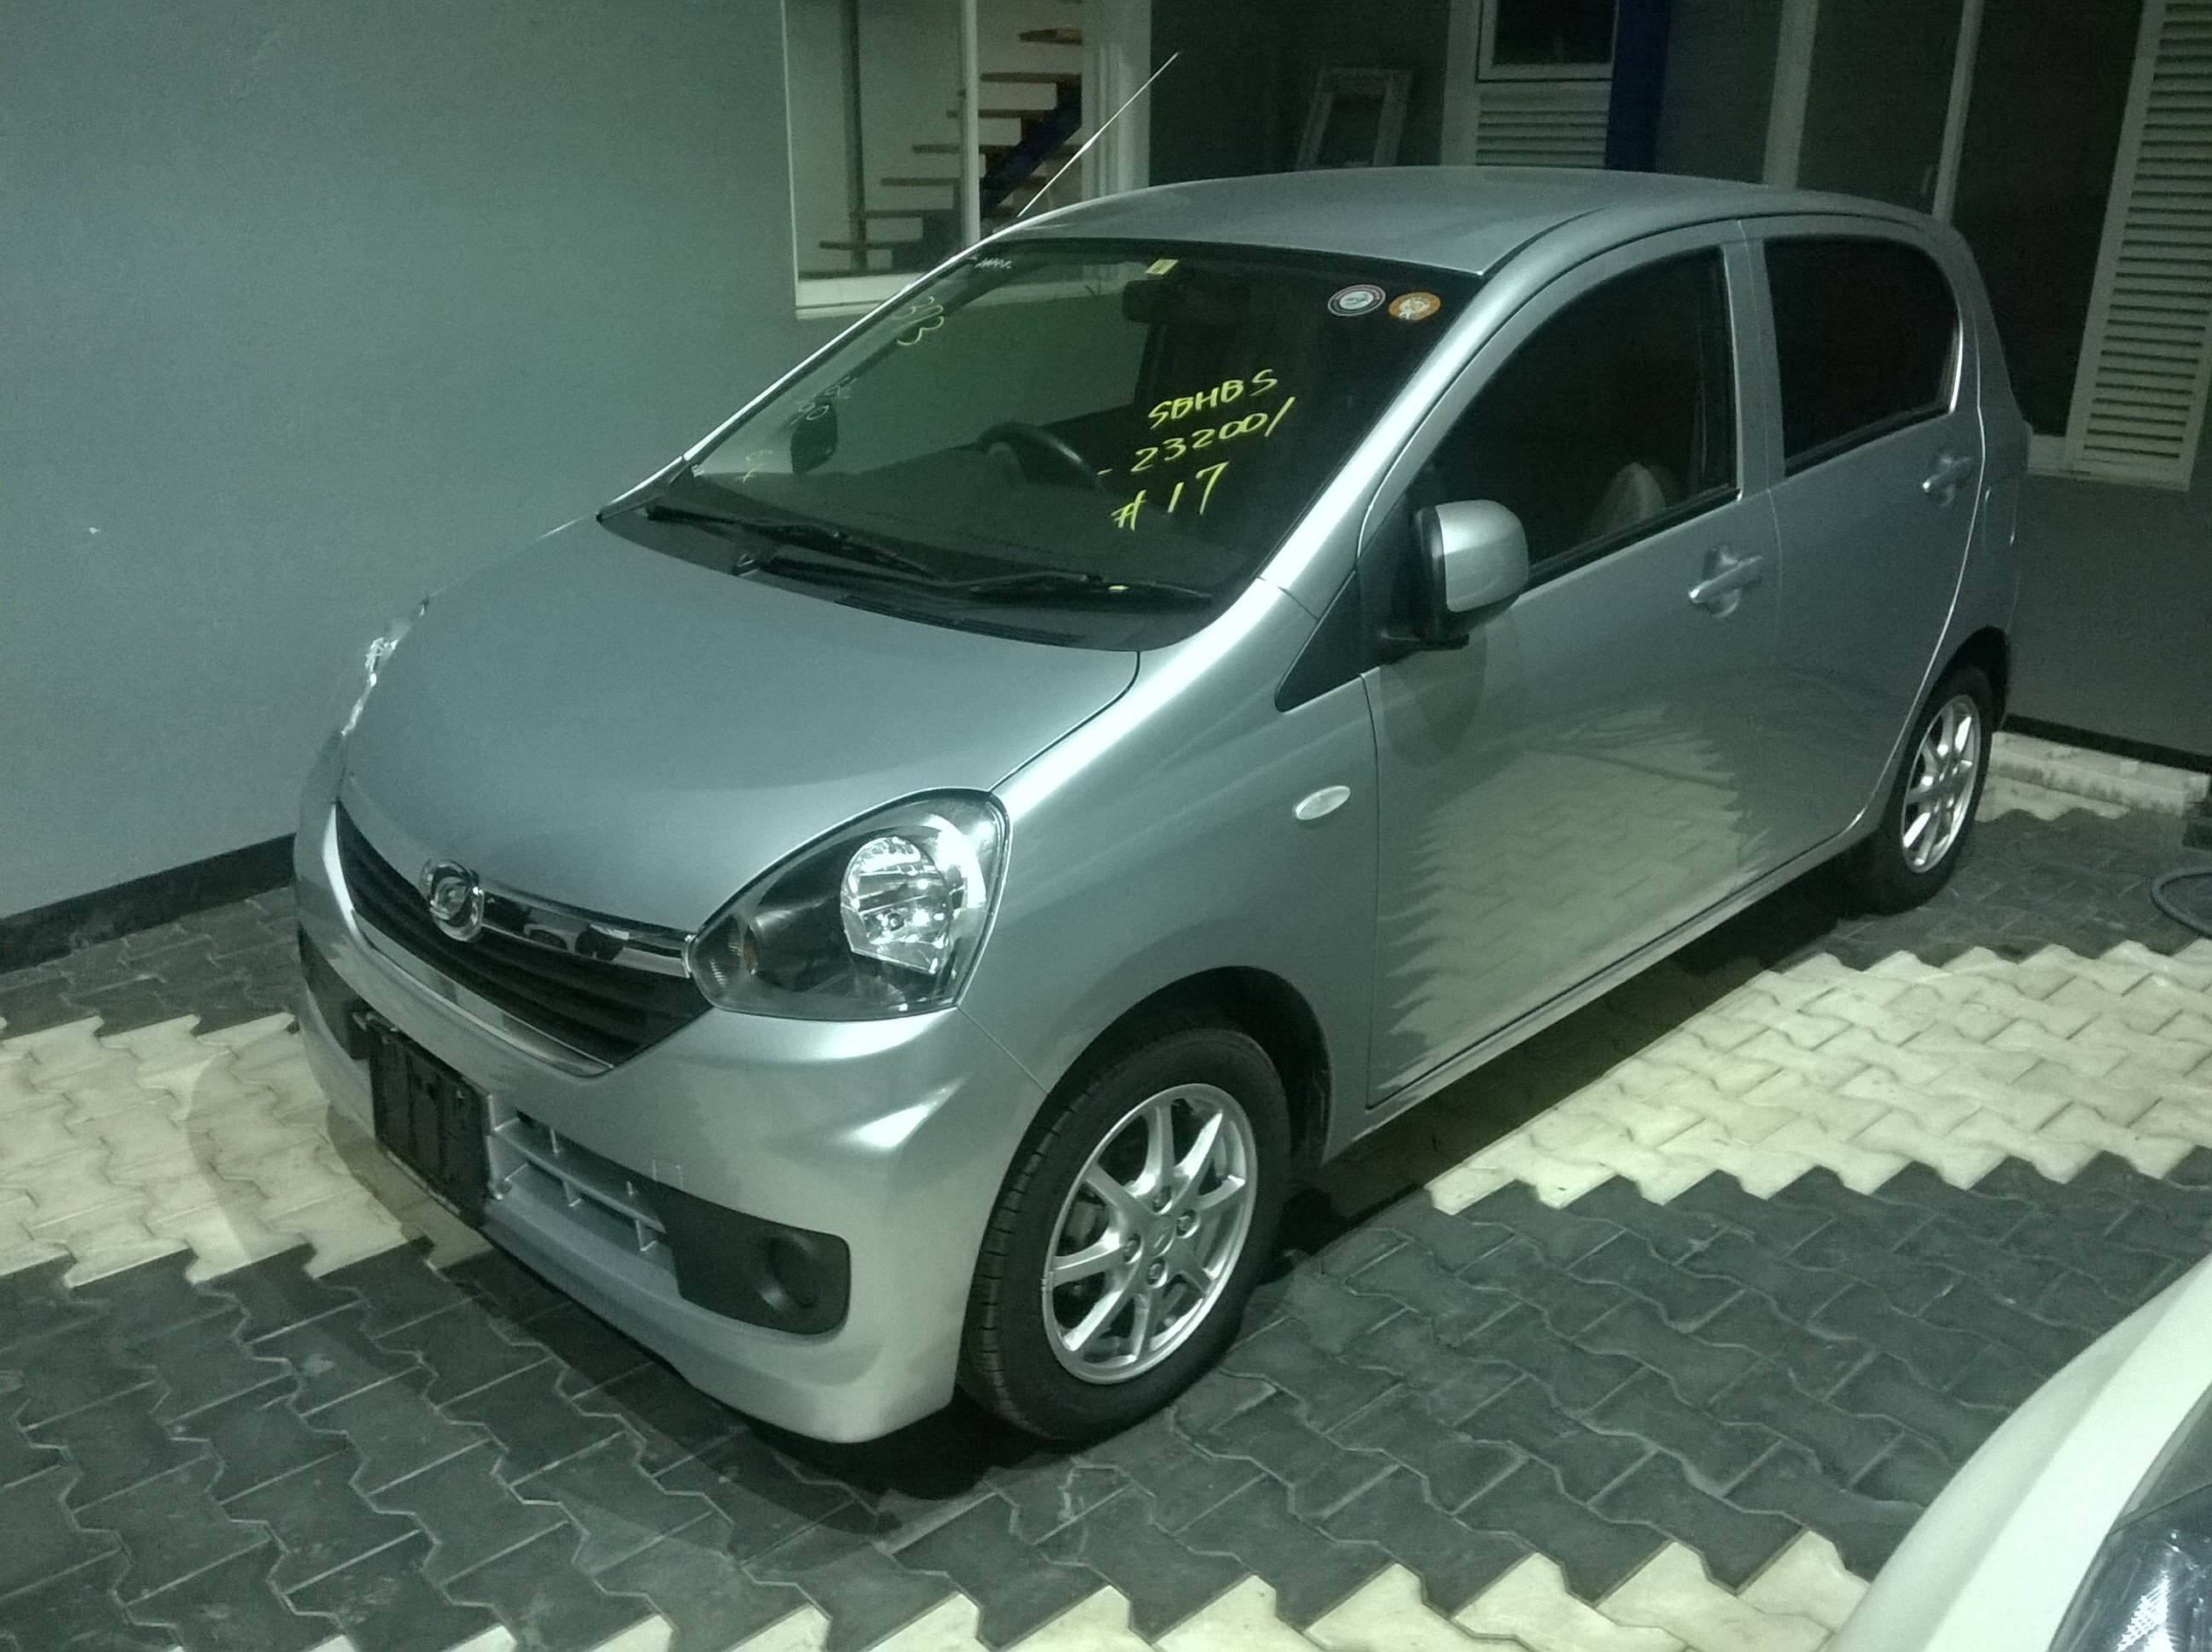 Daihatsu Mira LA300S user review